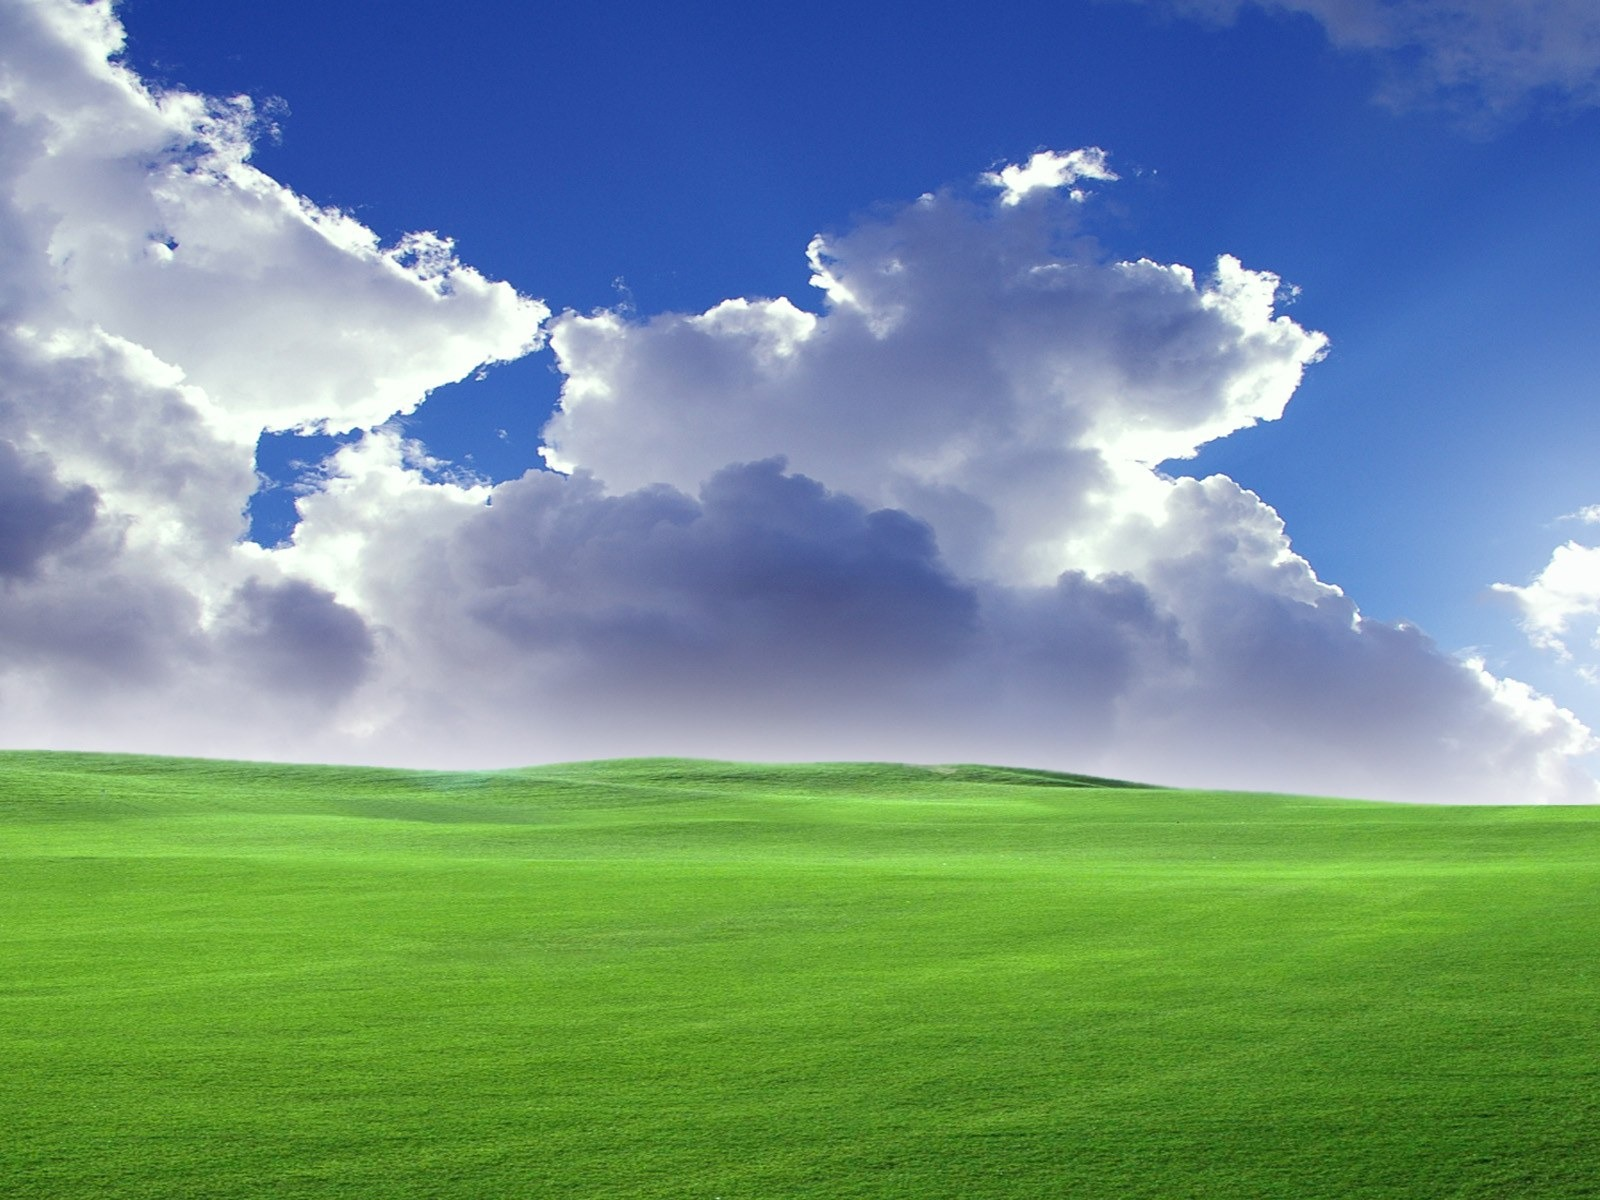 Window pastoral the worlds high definition nature - 1920x1080 nature background ...